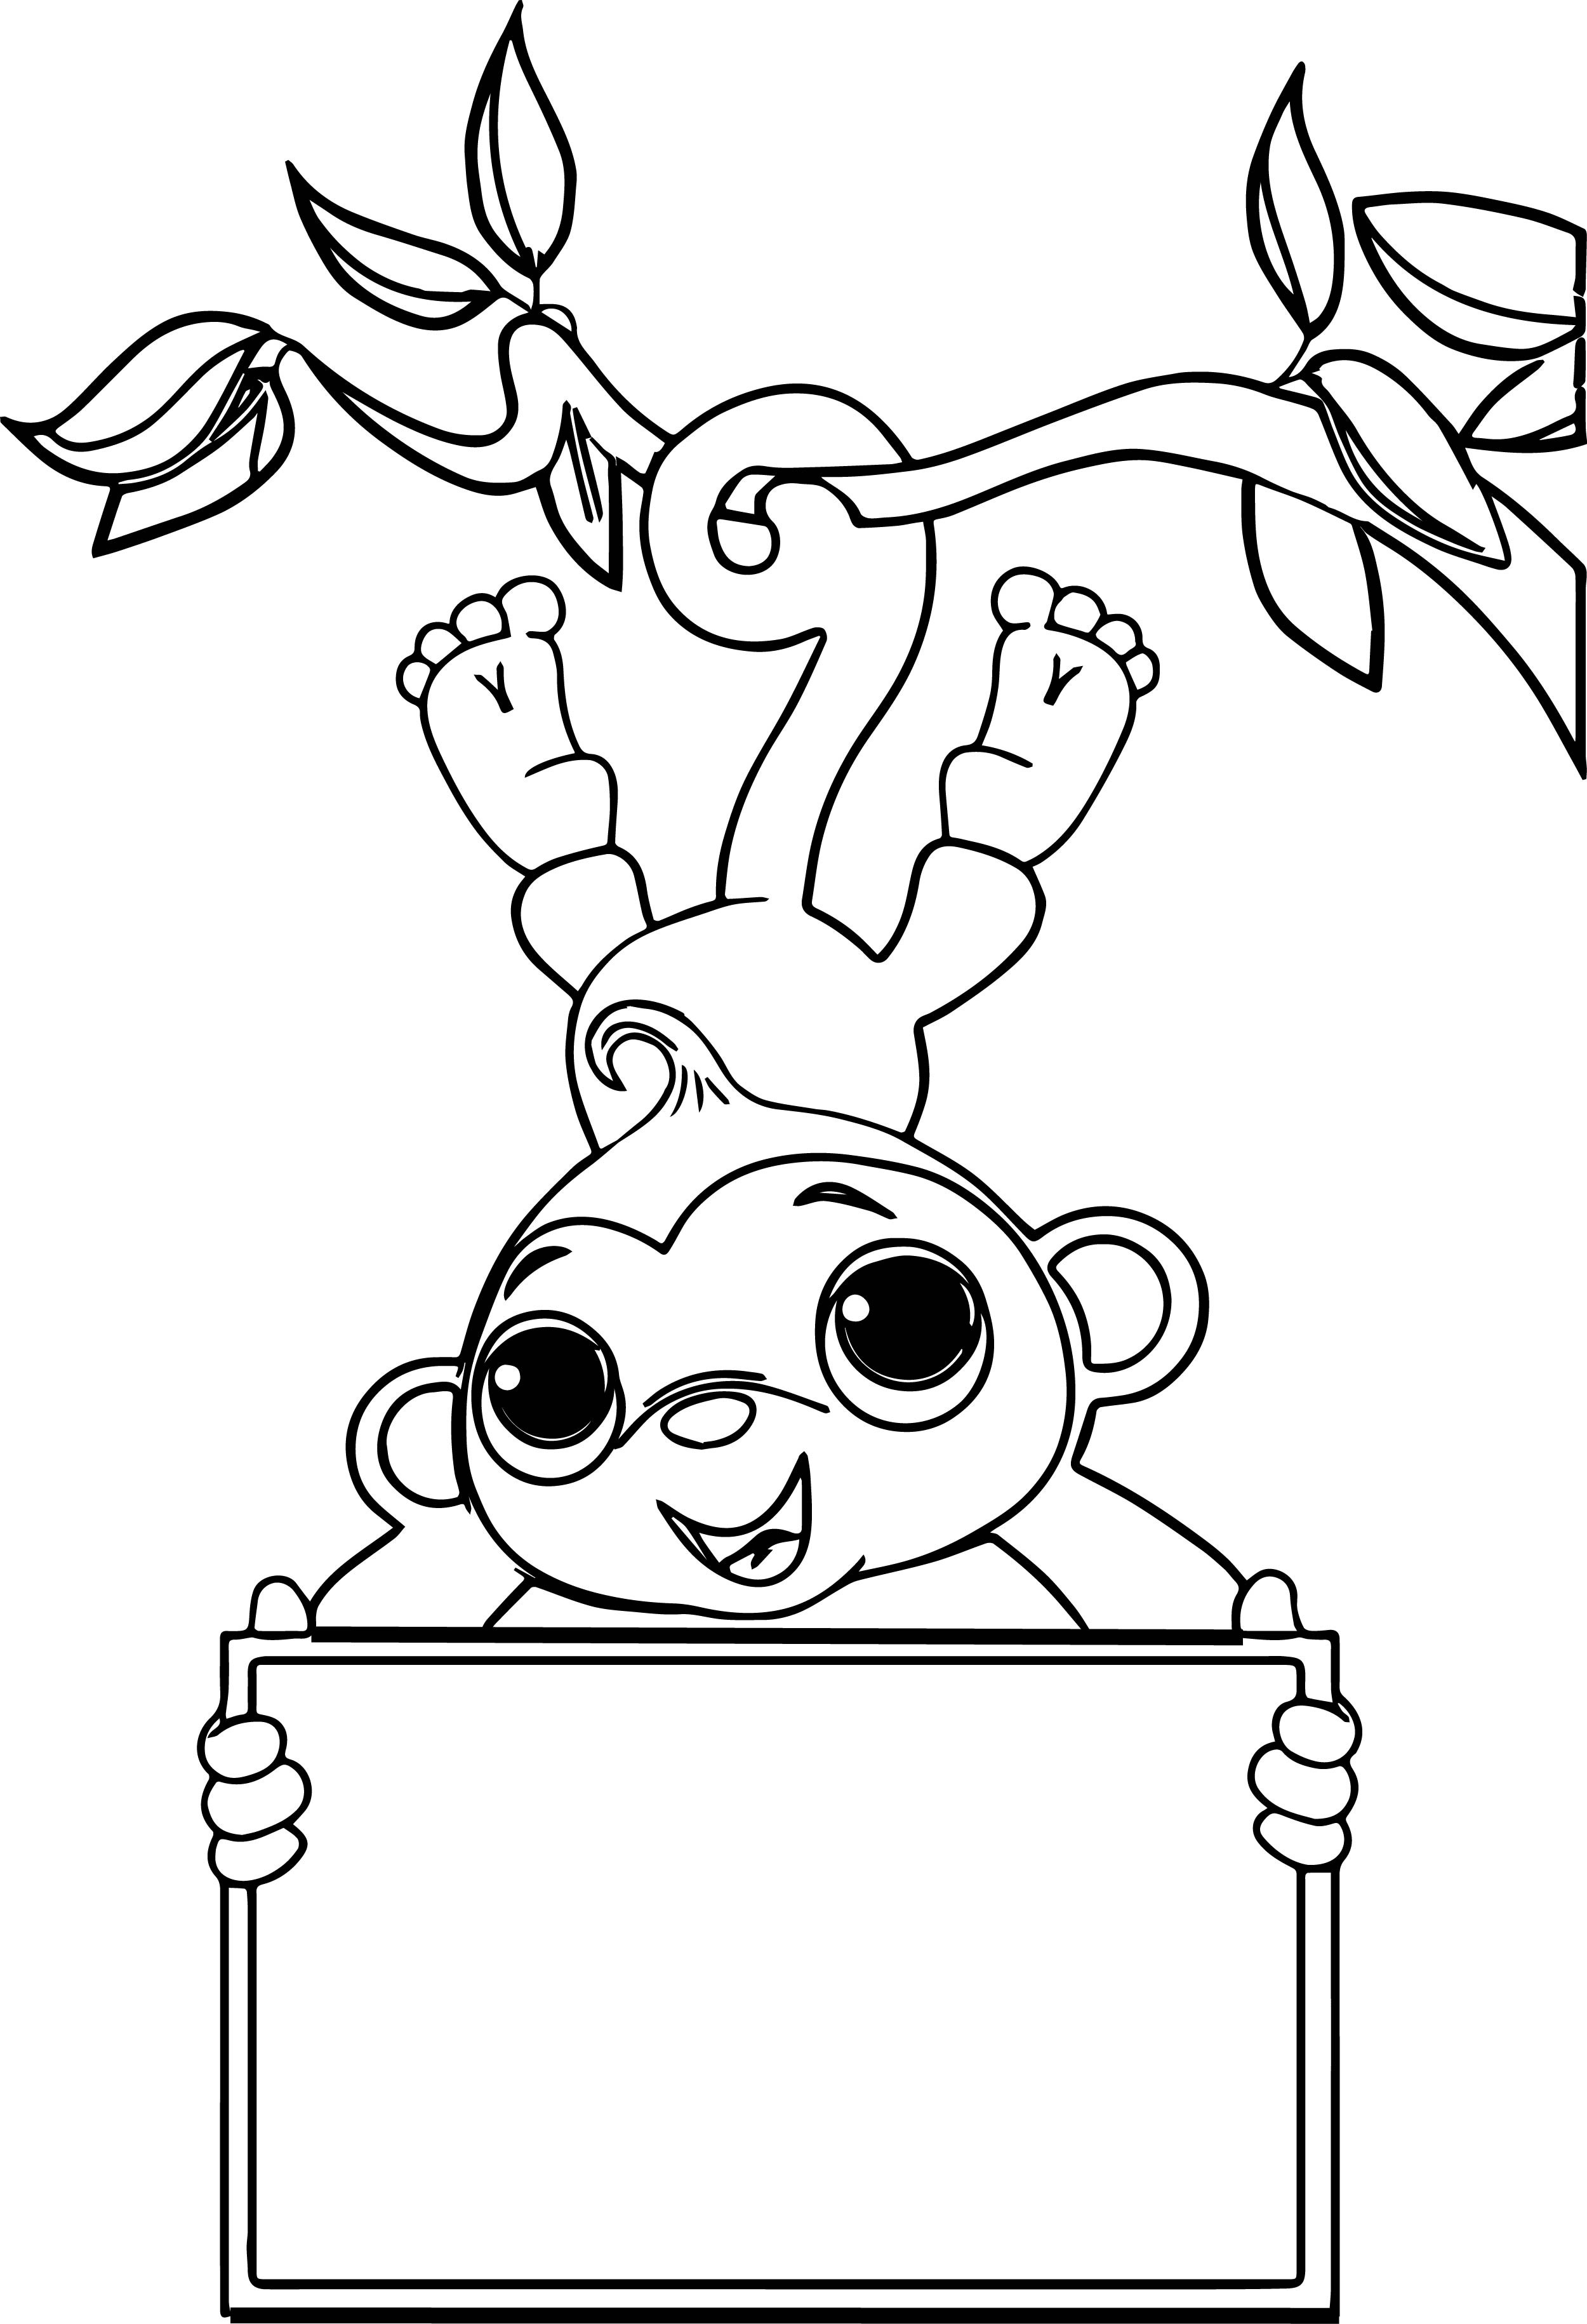 2500x3660 Coloring Pages Baby Monkey Best Zoo Free Sock Monkey Download